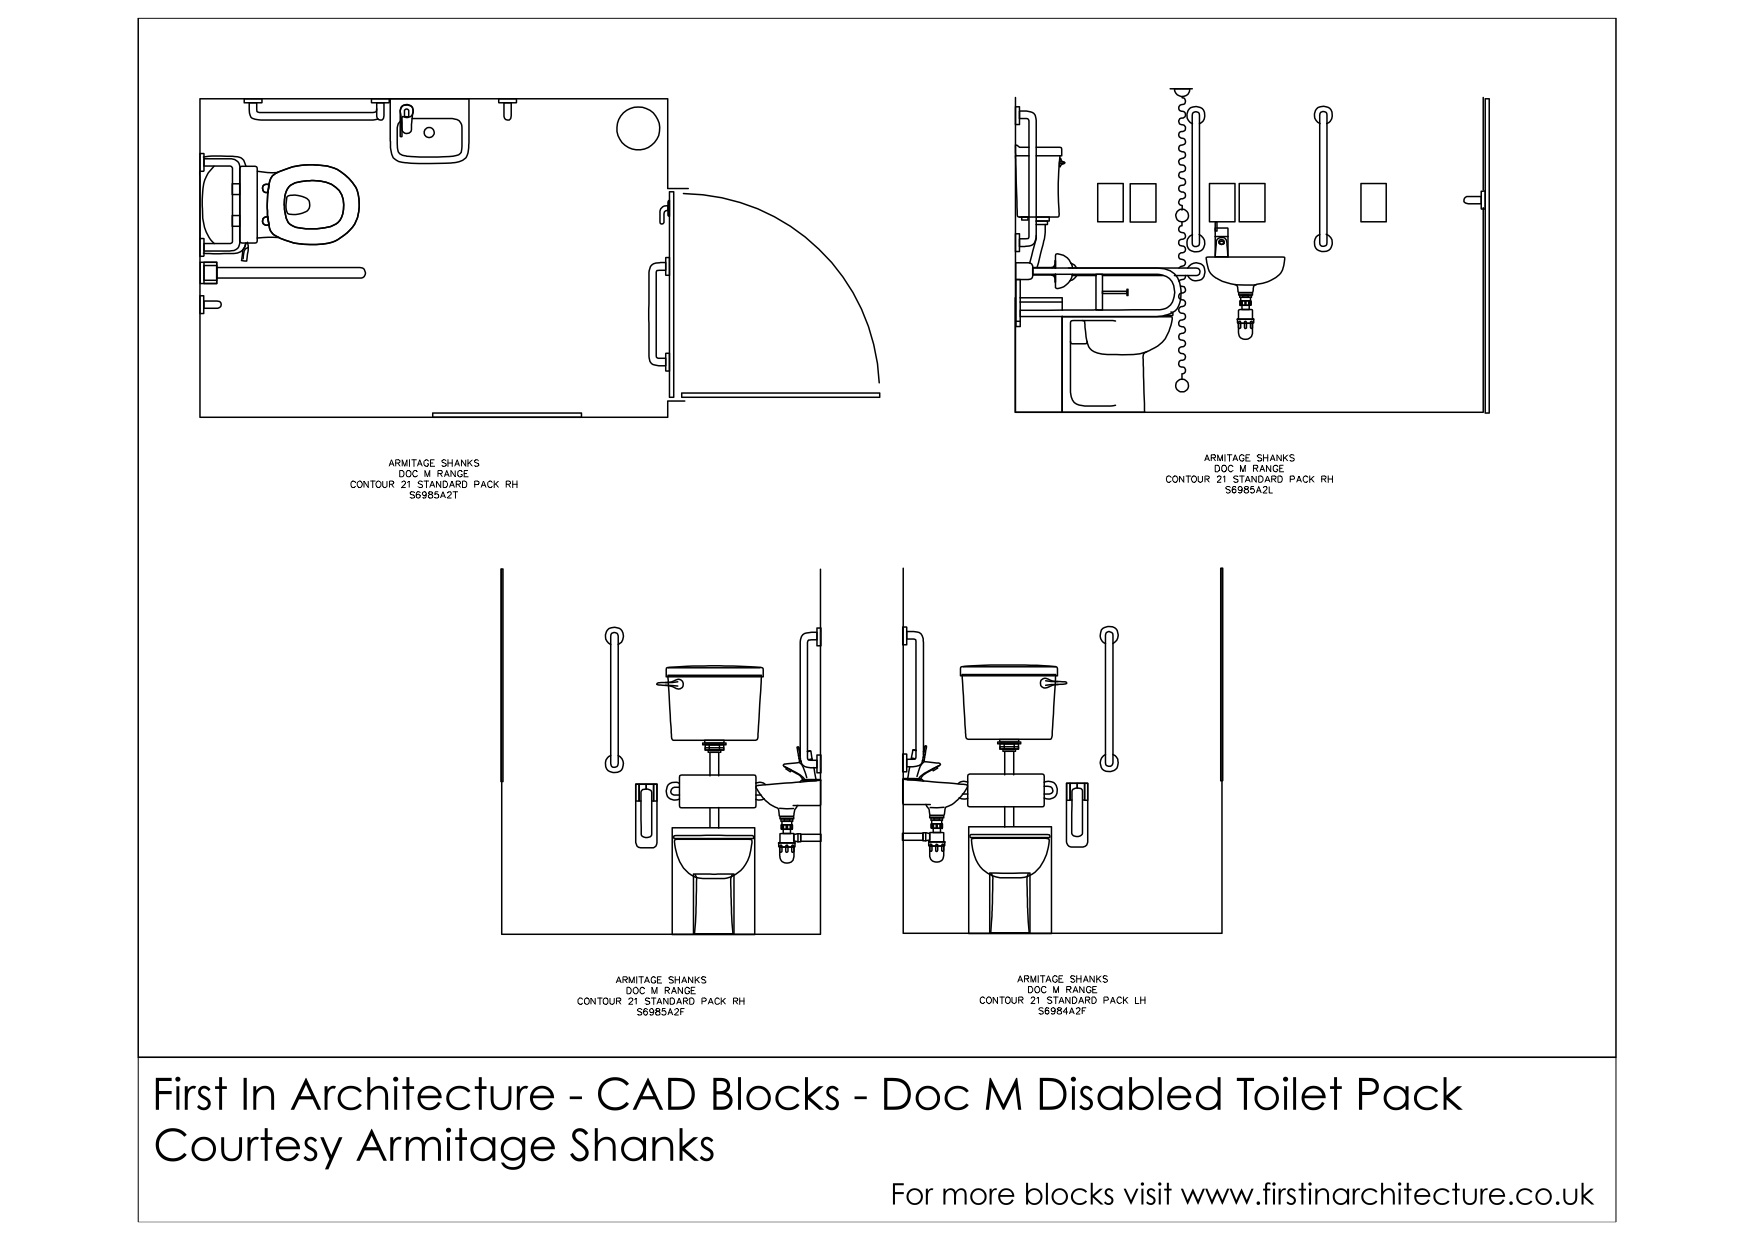 Toilet Elevation Plan : Free cad blocks doc m disabled toilet first in